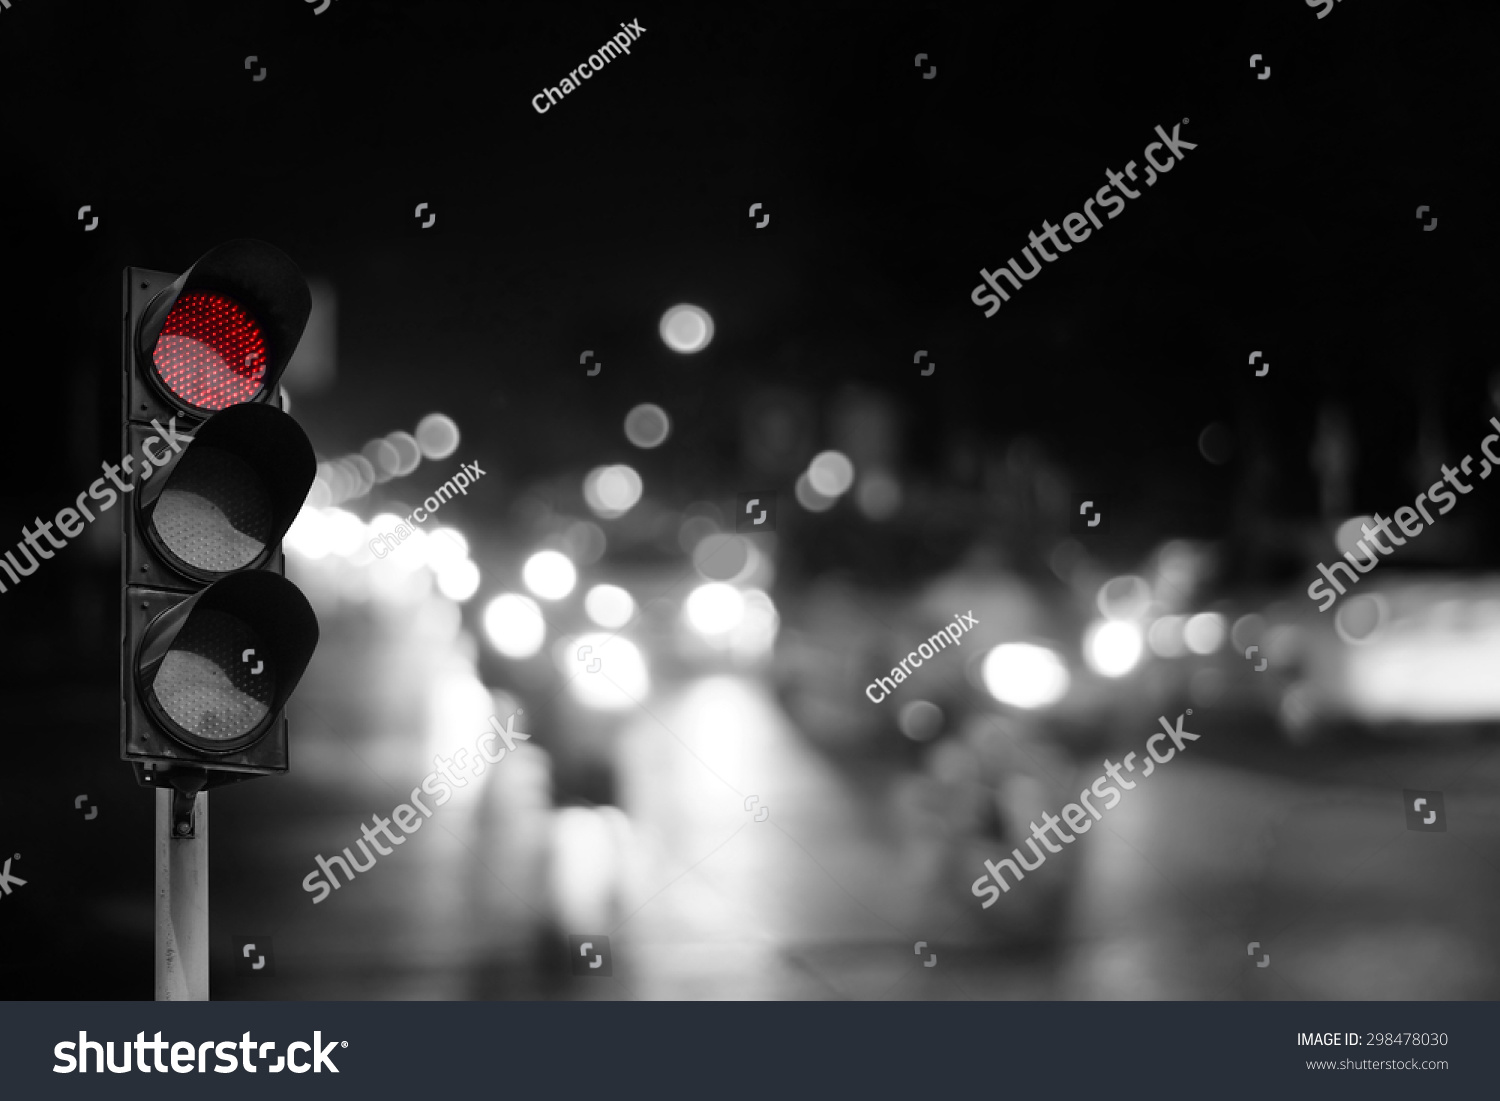 Red Traffic Light On Road Night Stock Photo 298478030 - Shutterstock for Traffic Light On Road At Night  239wja